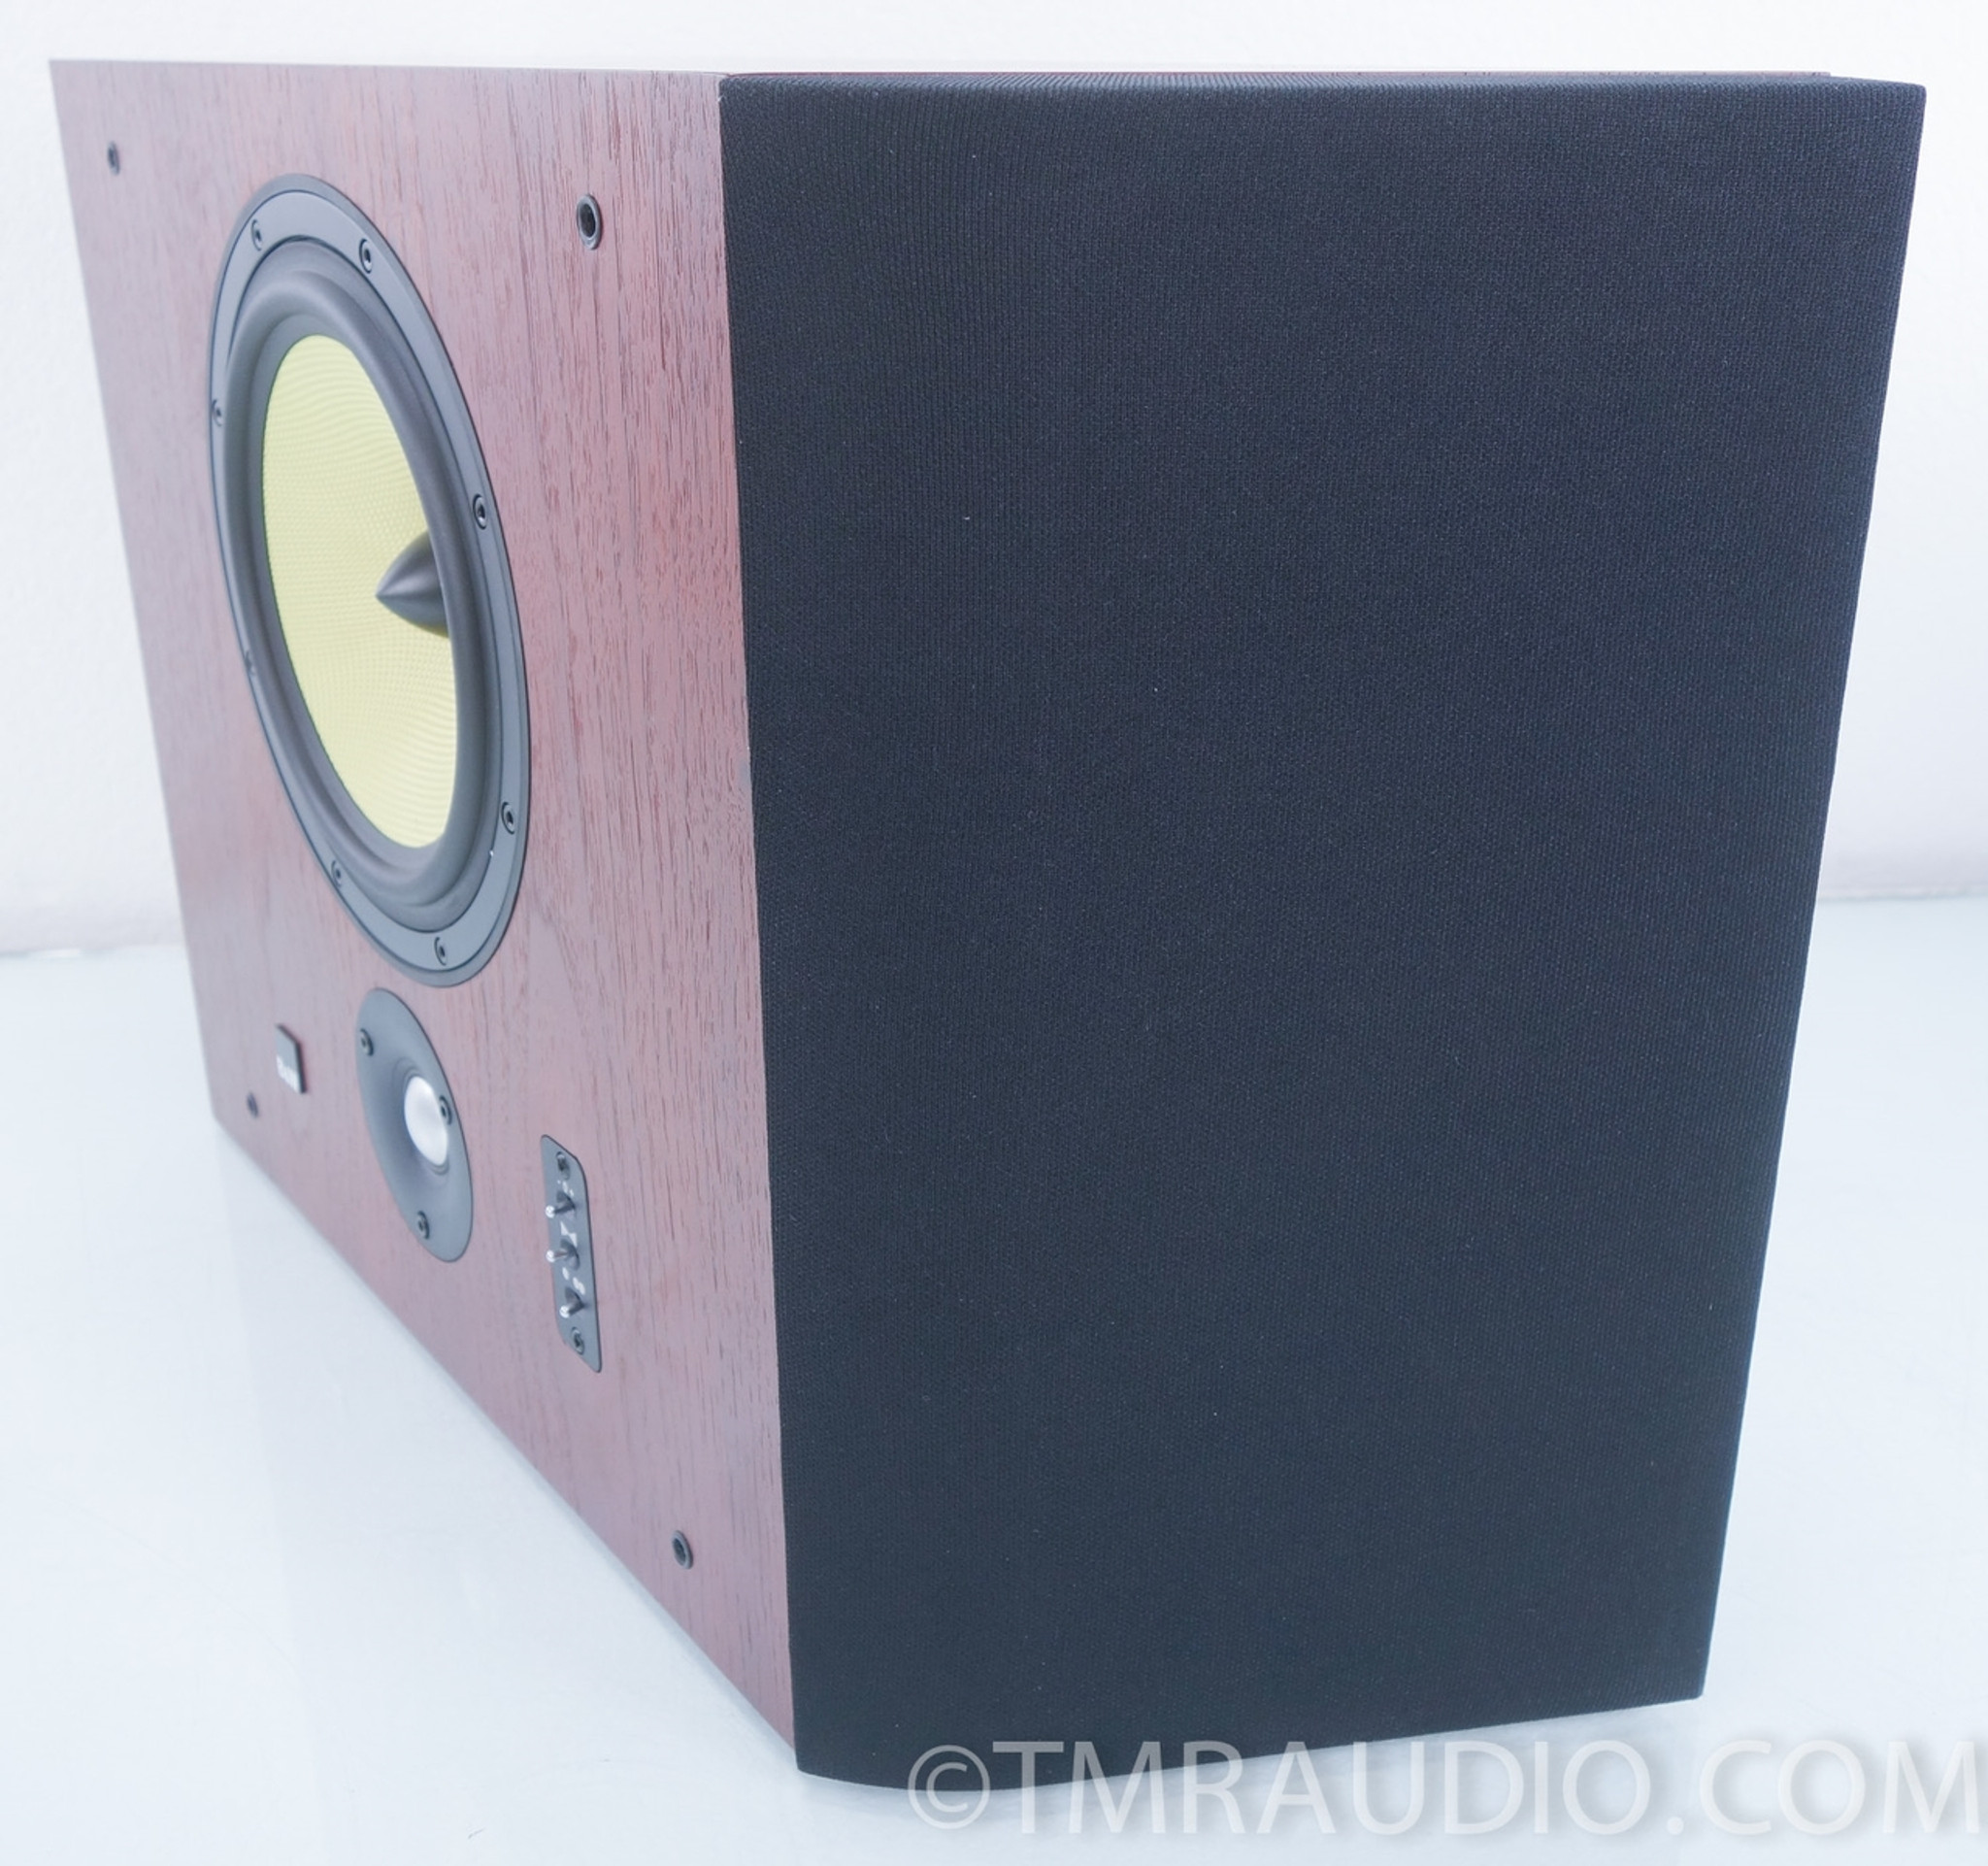 B&W DS8 On Wall Surround Speaker in Factory Box; Bowers & Wilkins ...